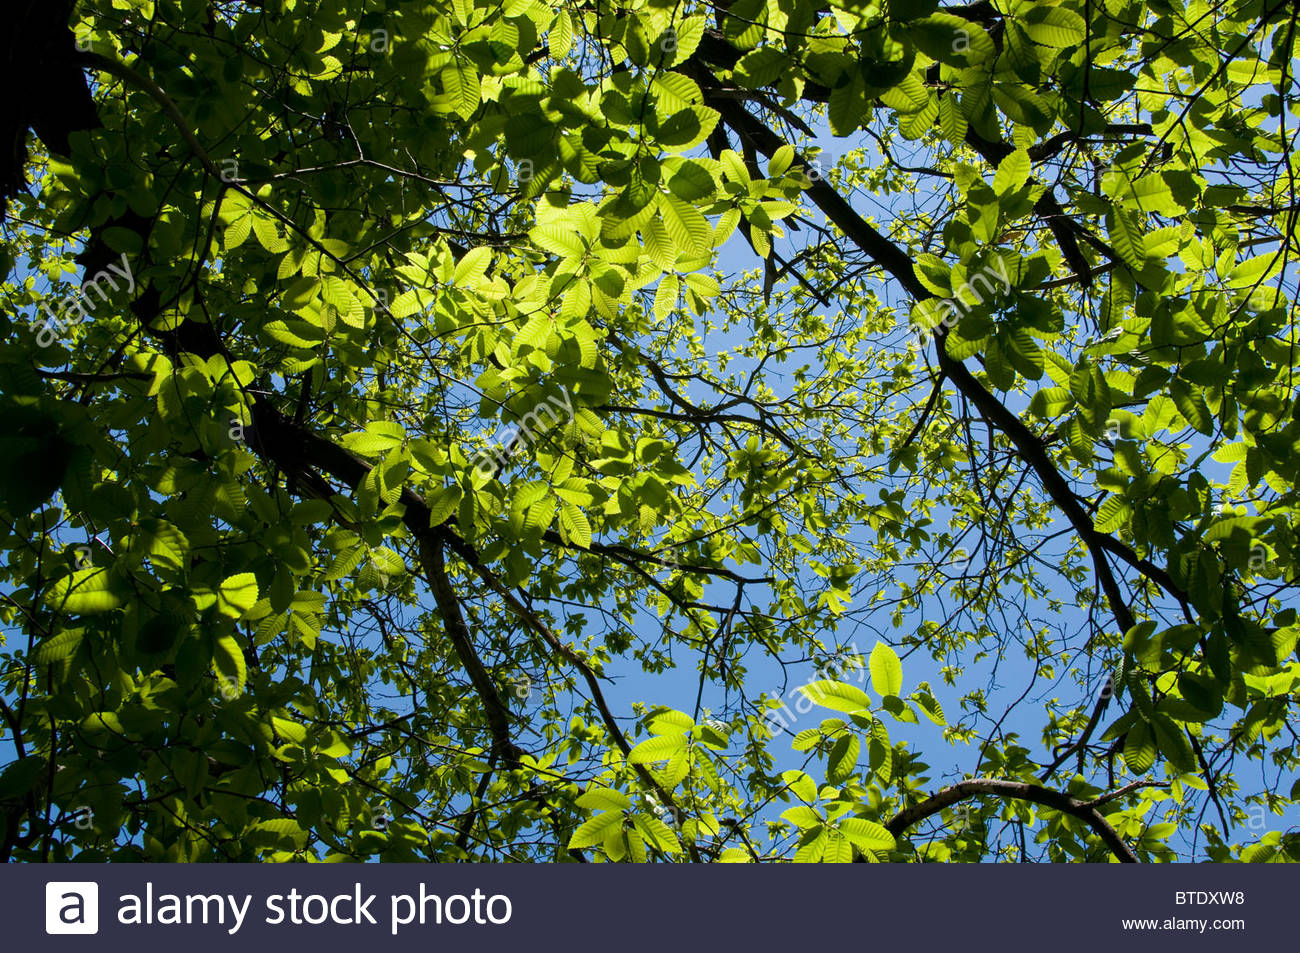 A tree with green leaves against a blue sky - Stock Image